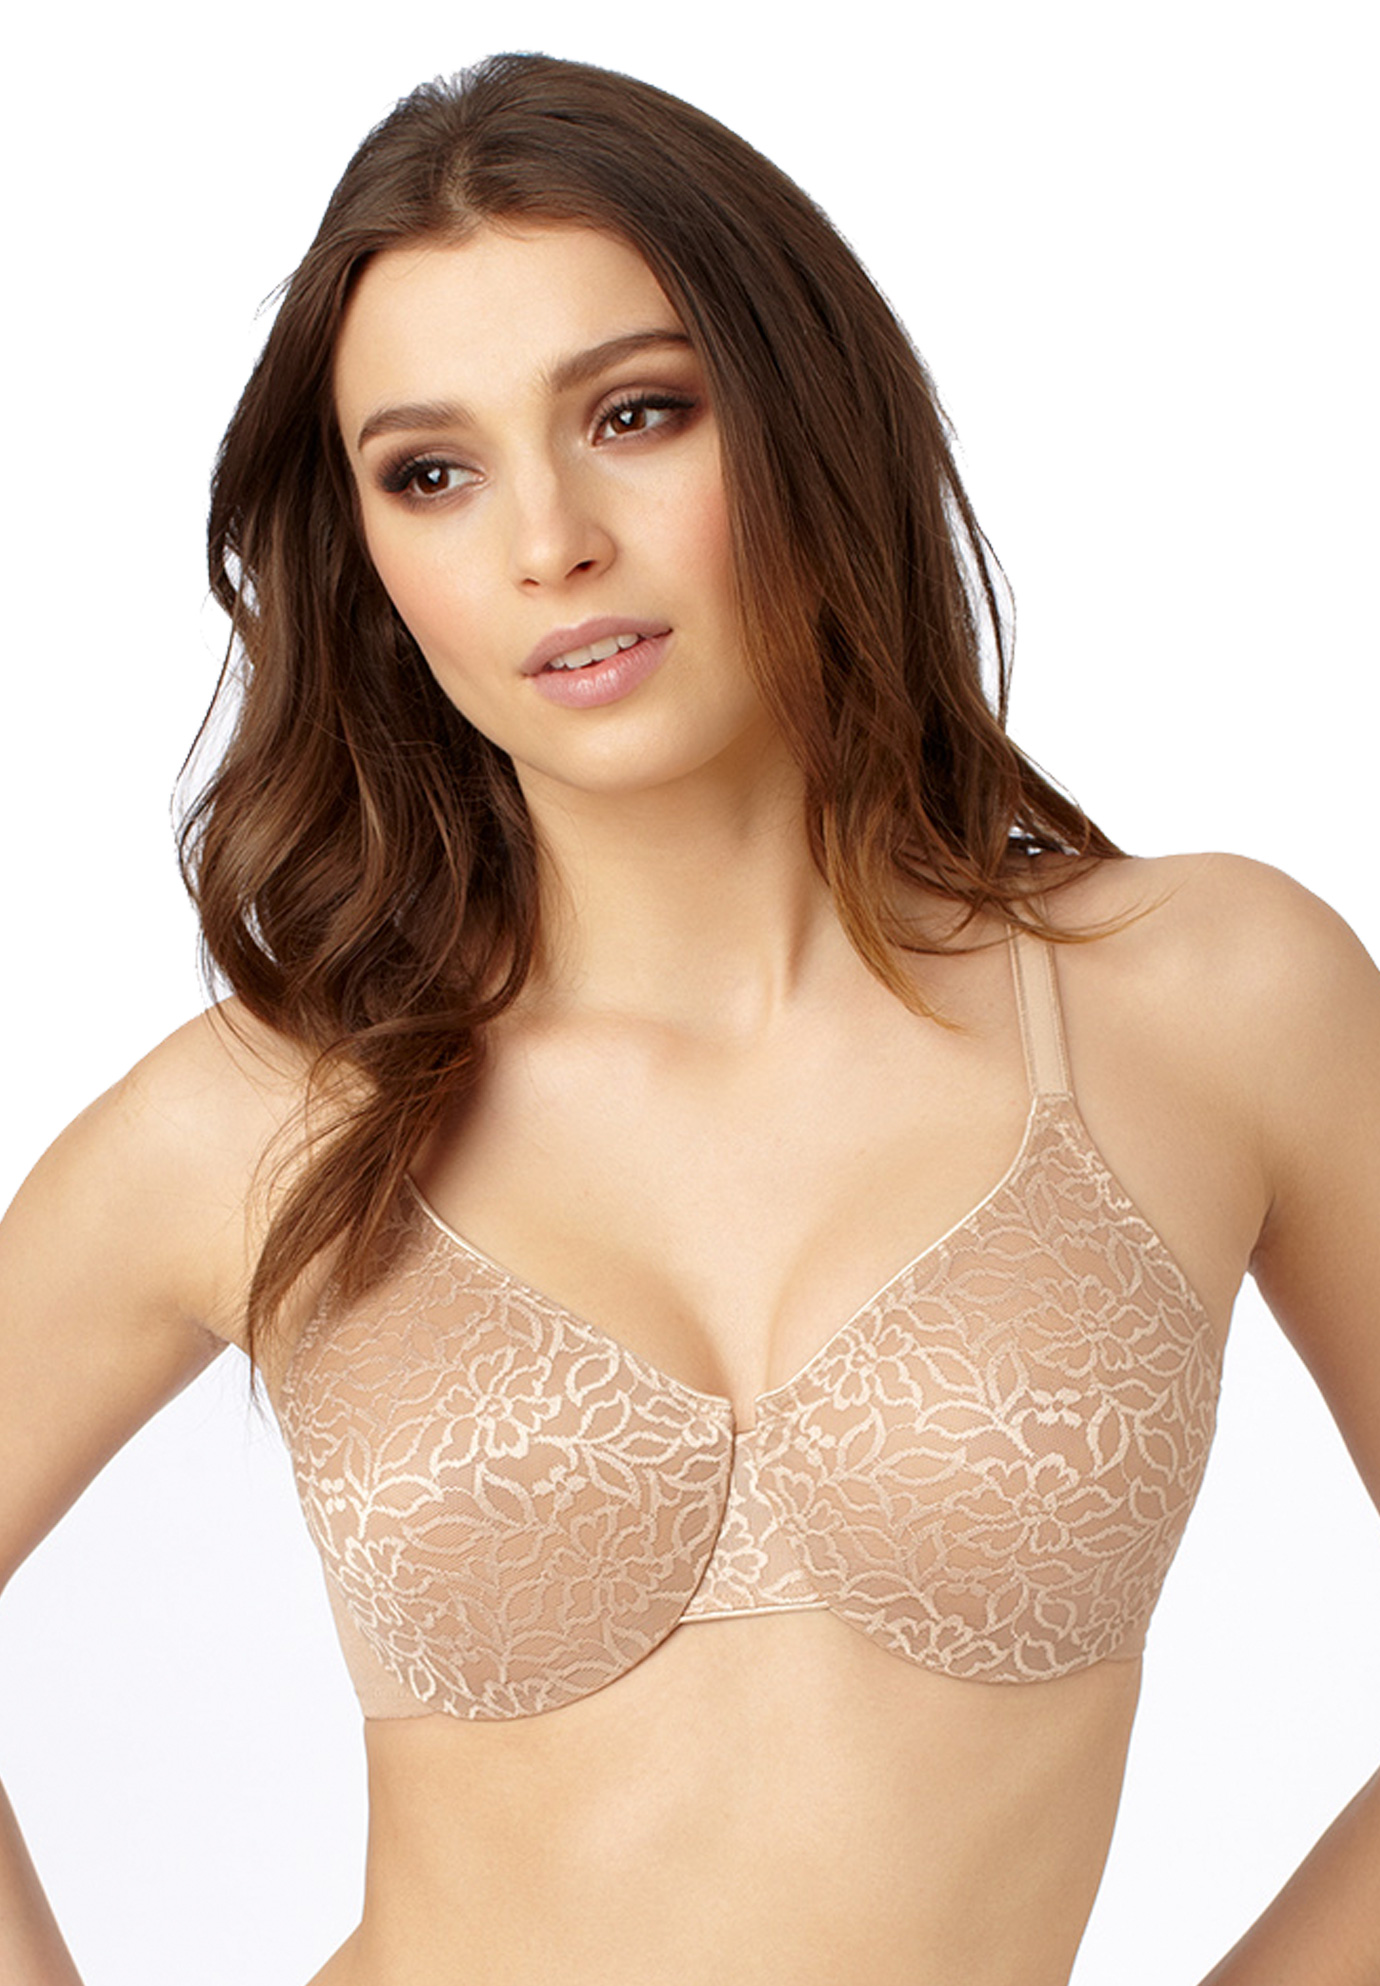 de445233c5 Slim Profile Minimizer Bra by Le Mystere